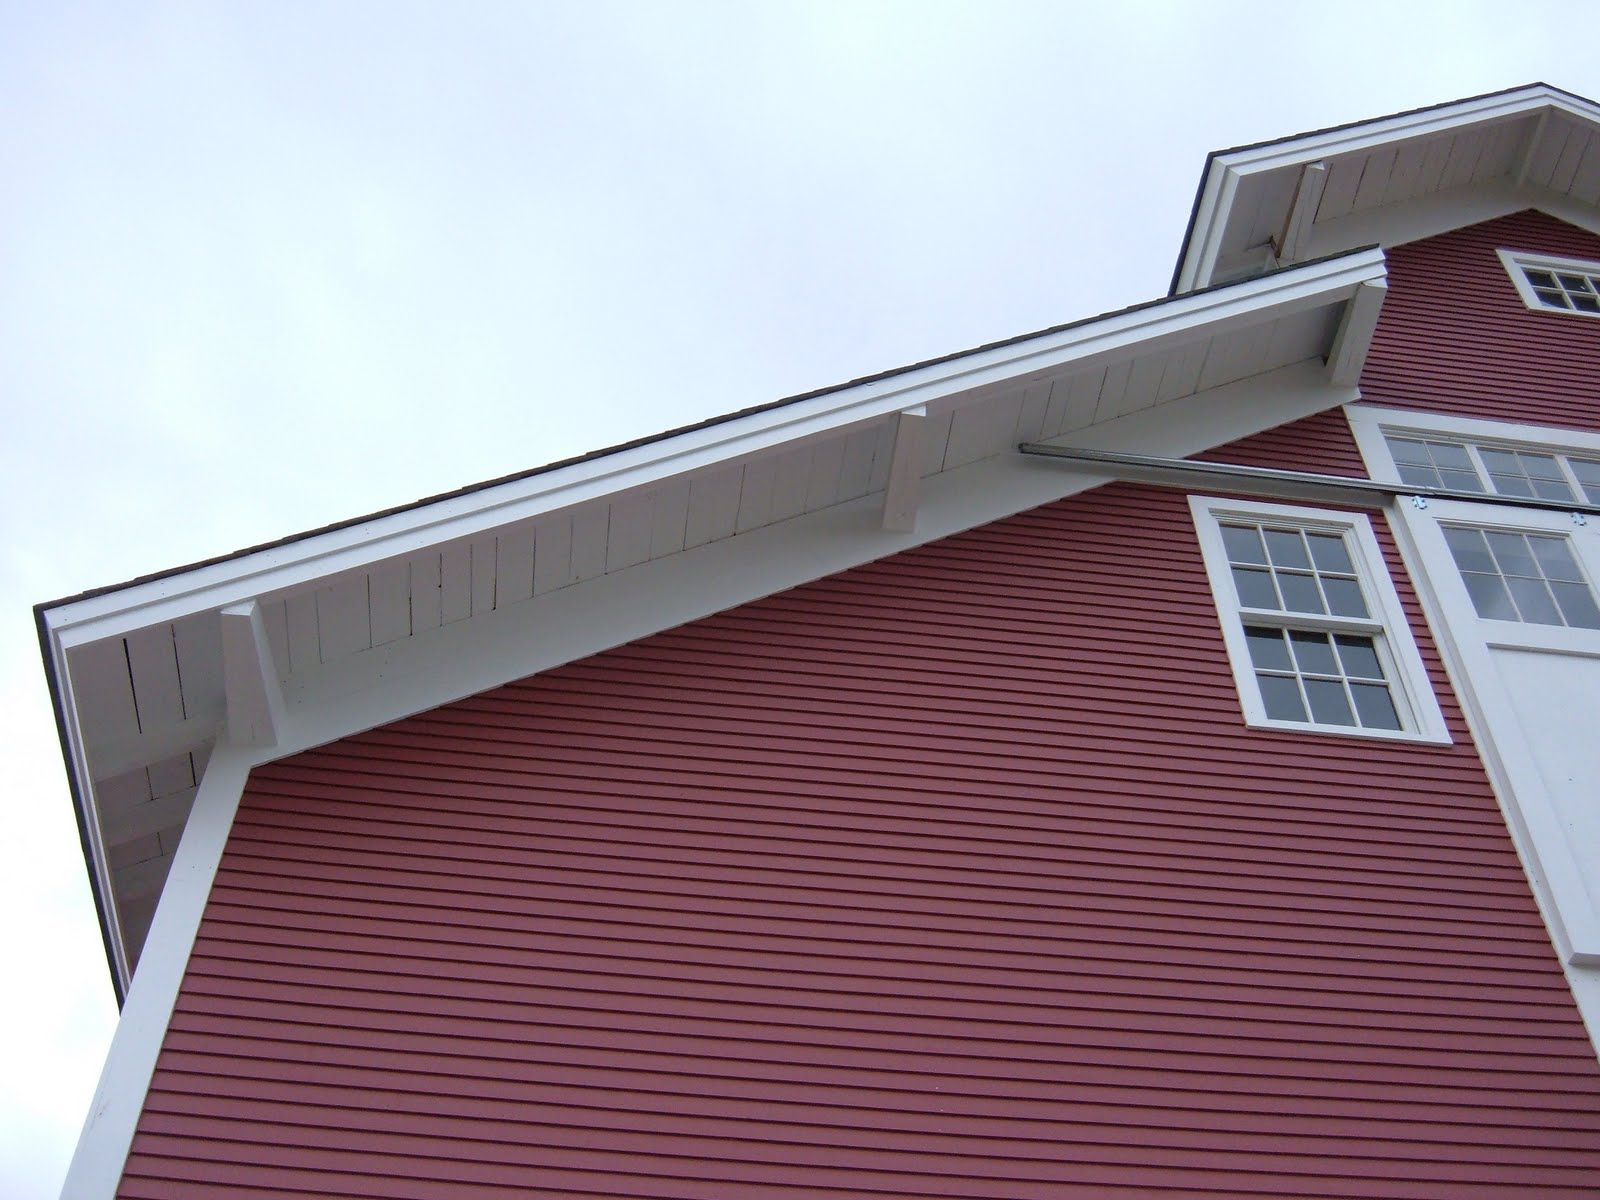 All plates extended past the gable to form the overhang.